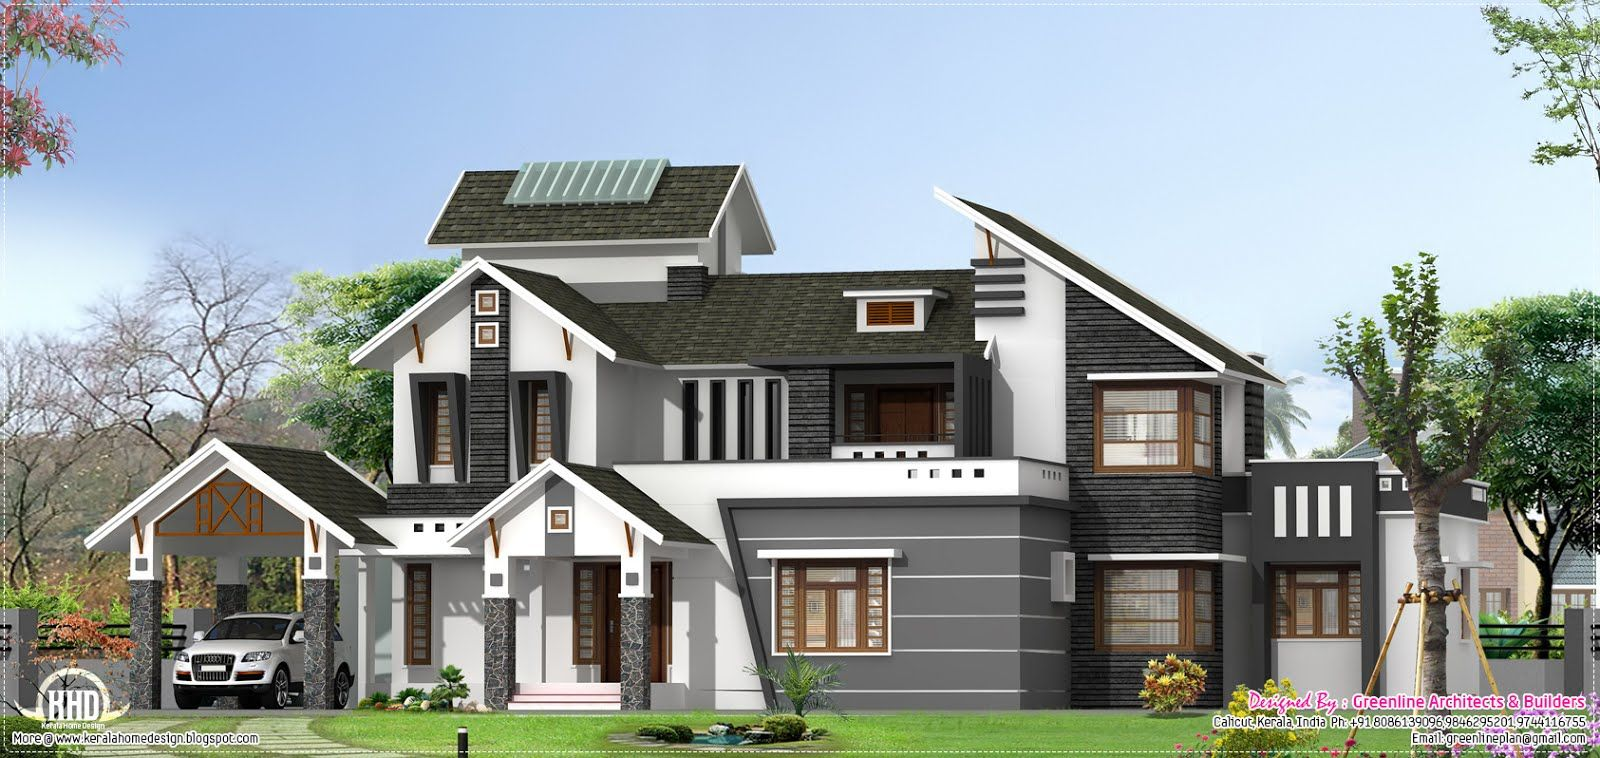 Architecture Design Kerala Model modern home design pertaining to modern house designs home